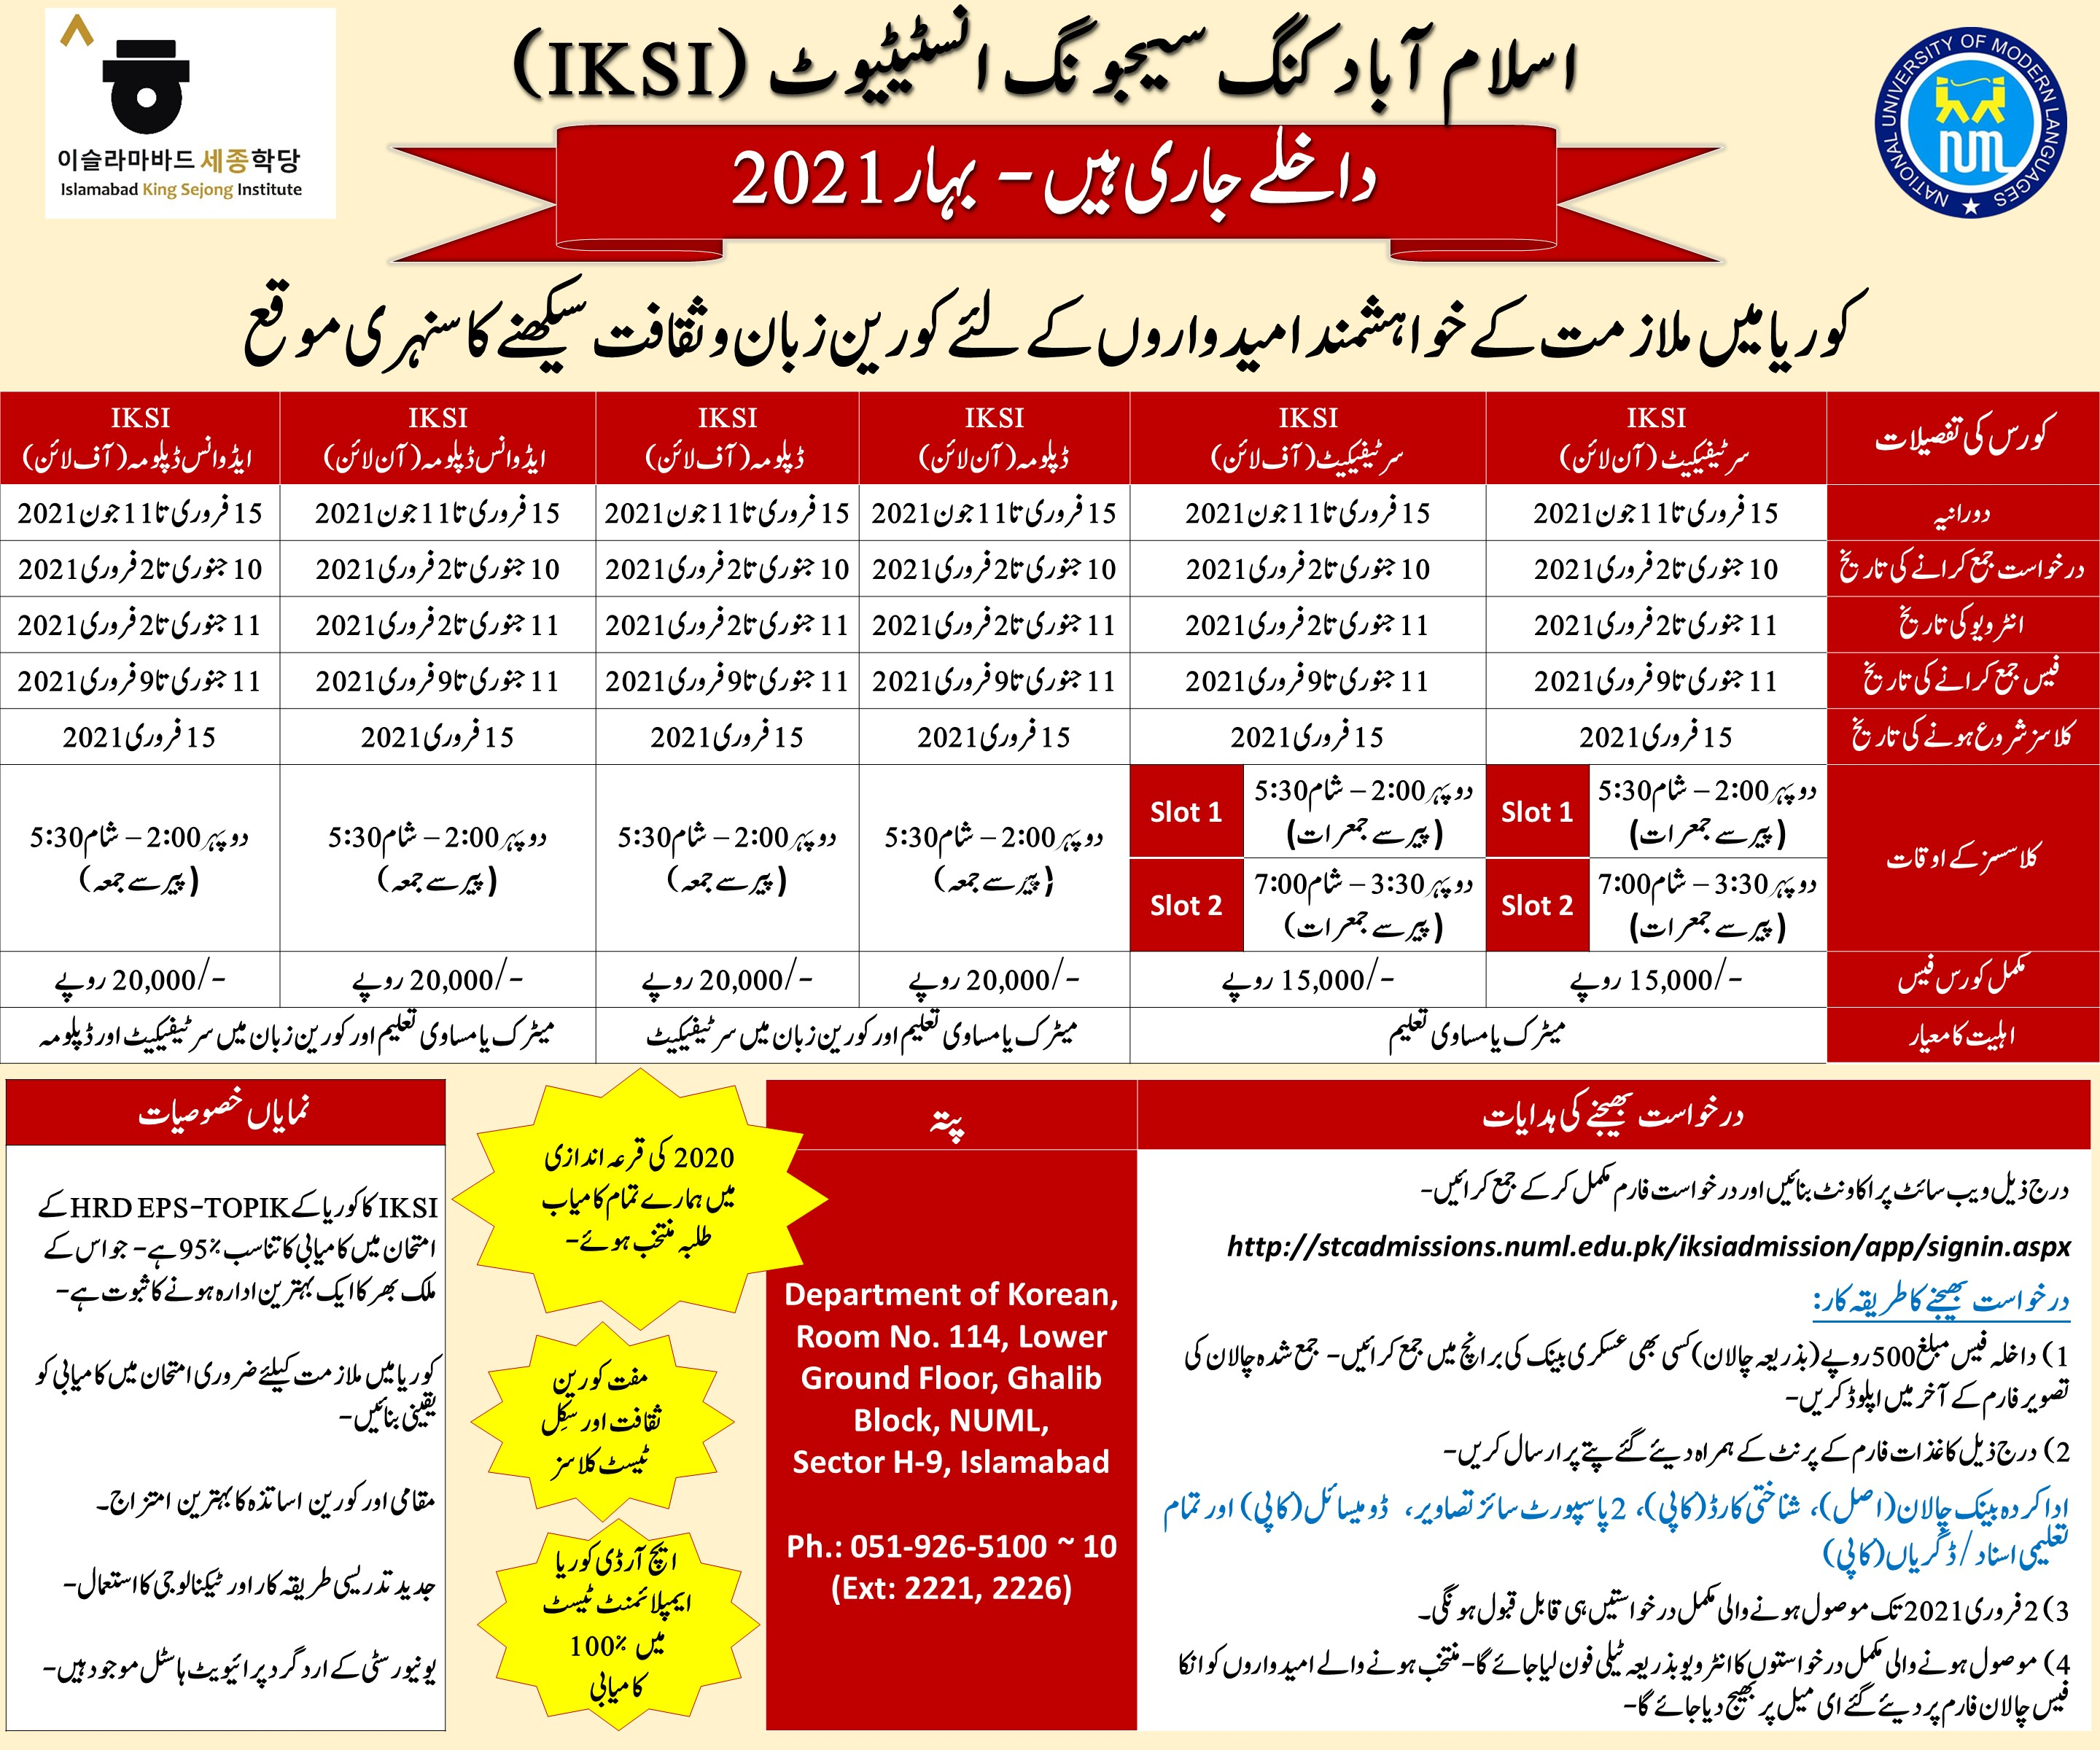 ISLAMABAD KING SEJONG INSTITUTE - SPRING 2021 ADMISSION OPEN